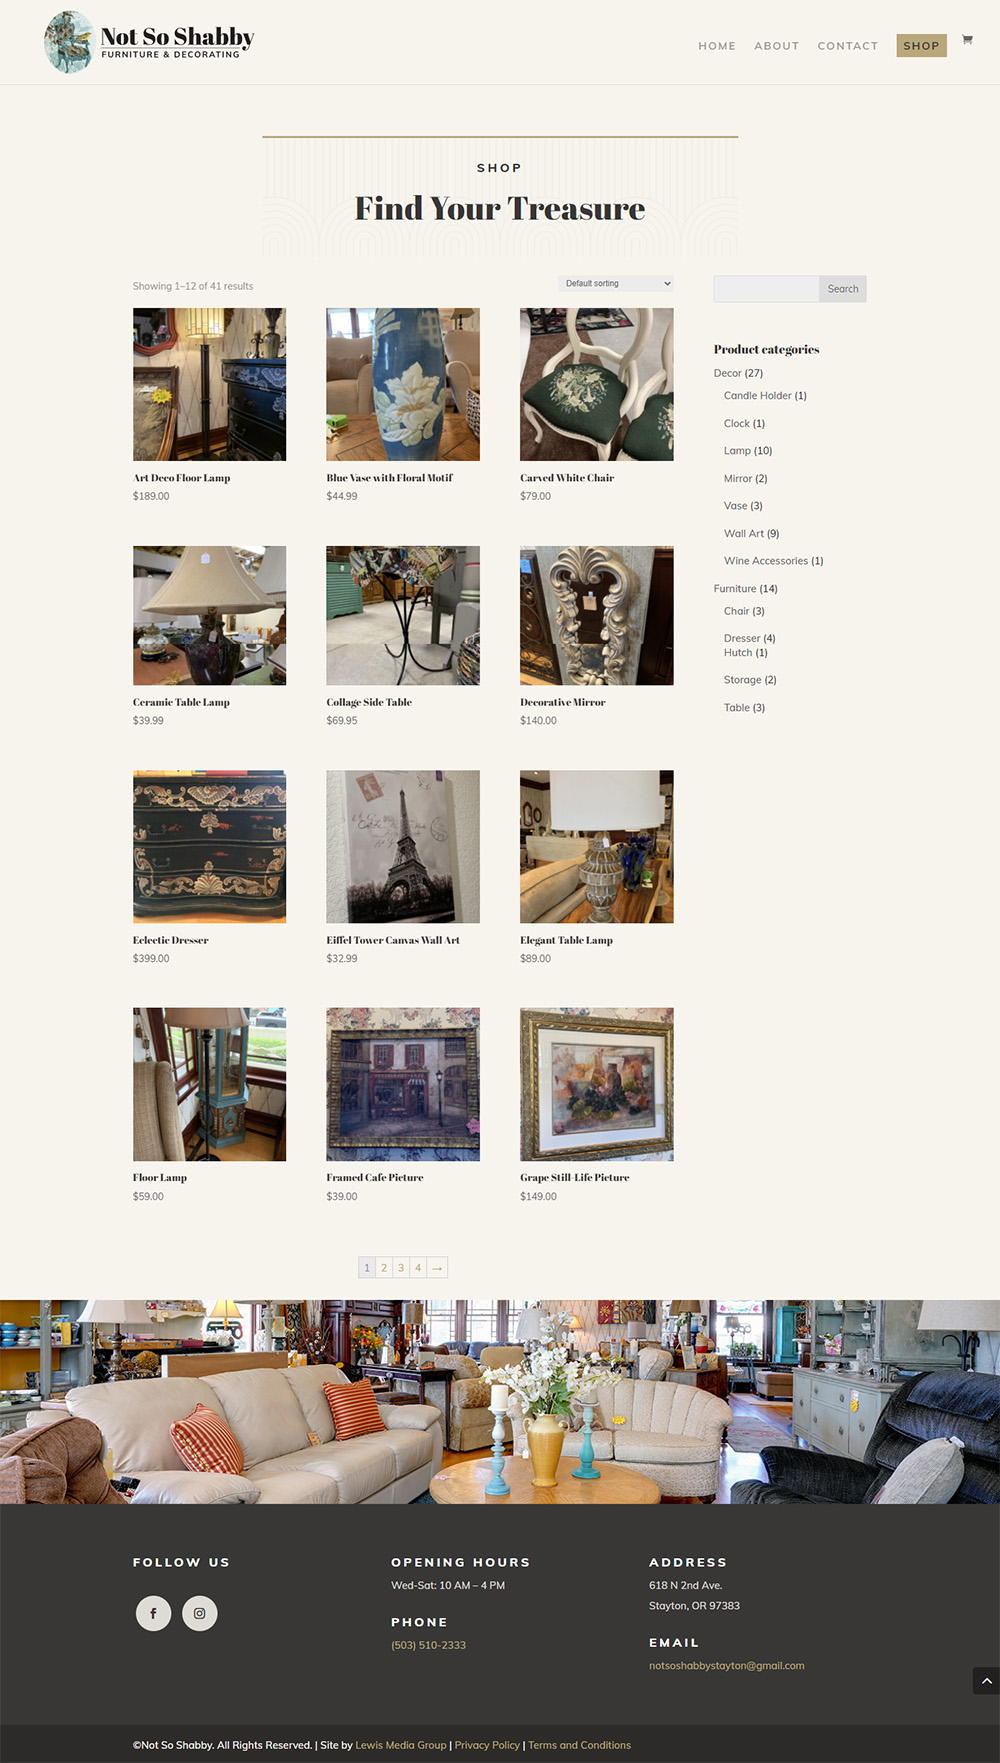 Not So Shabby's Shop page after redesign